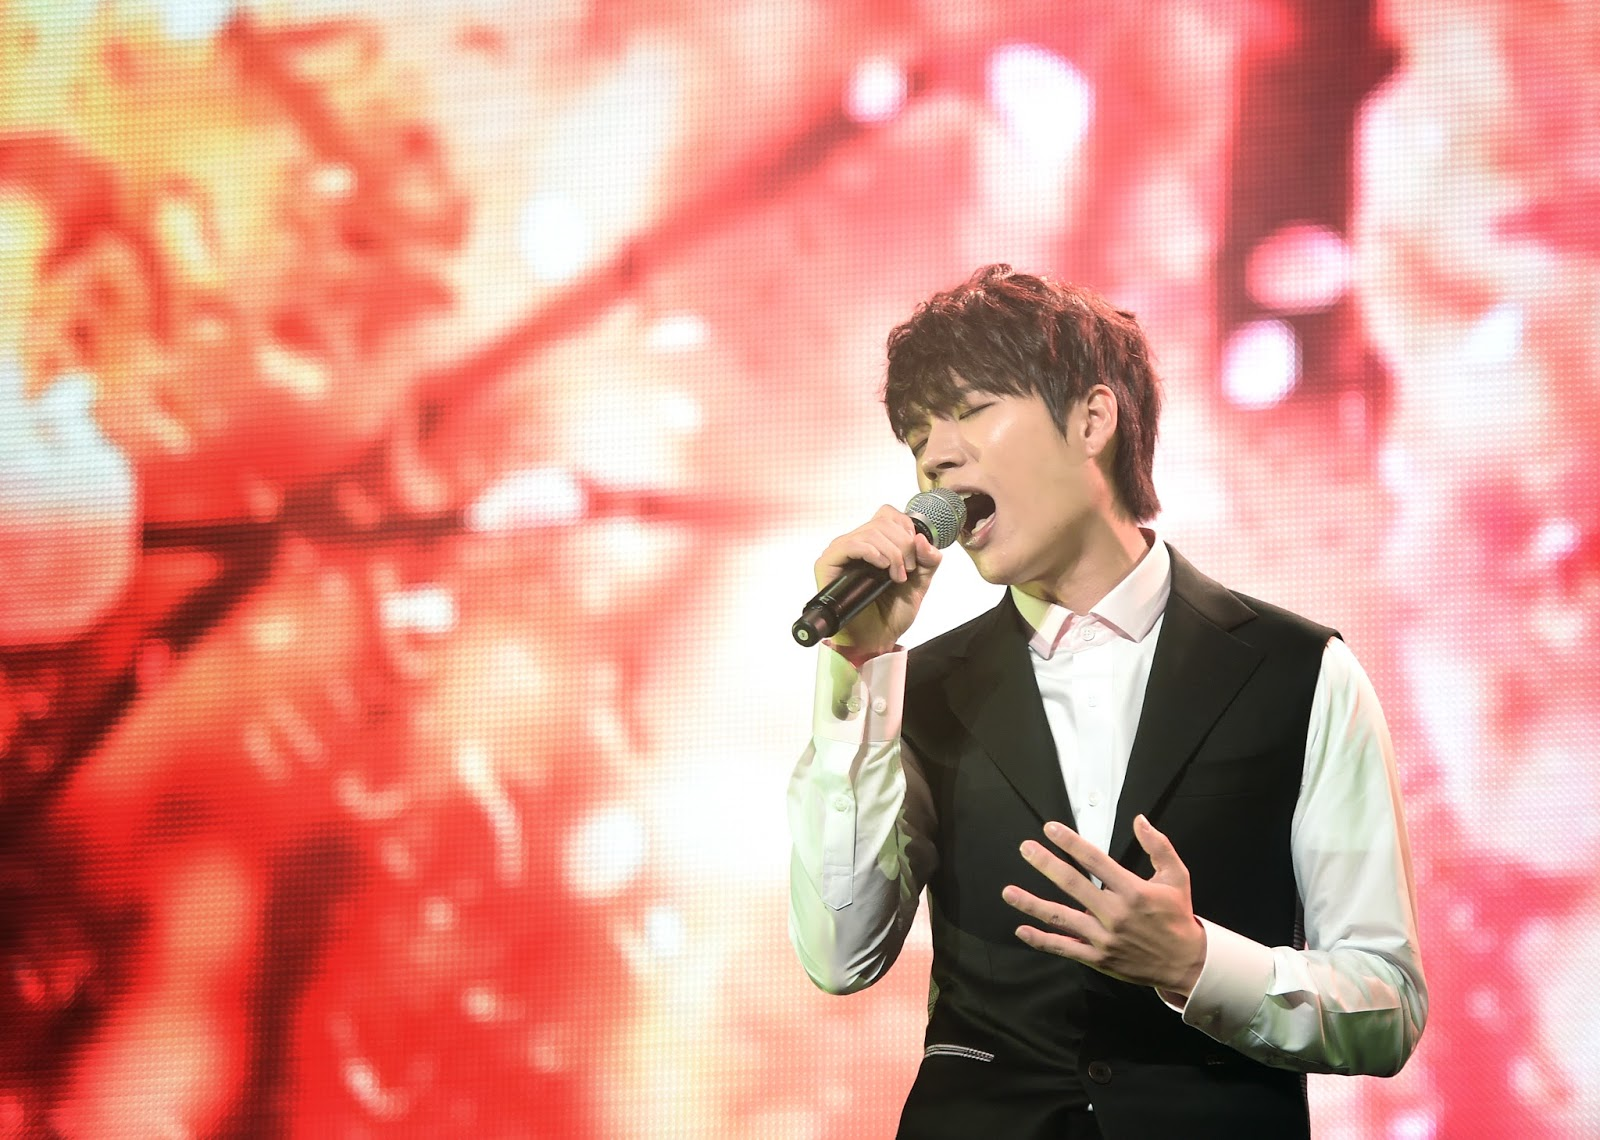 INFINITEs Nam Woohyun Releases Tender Music Video If Only You.